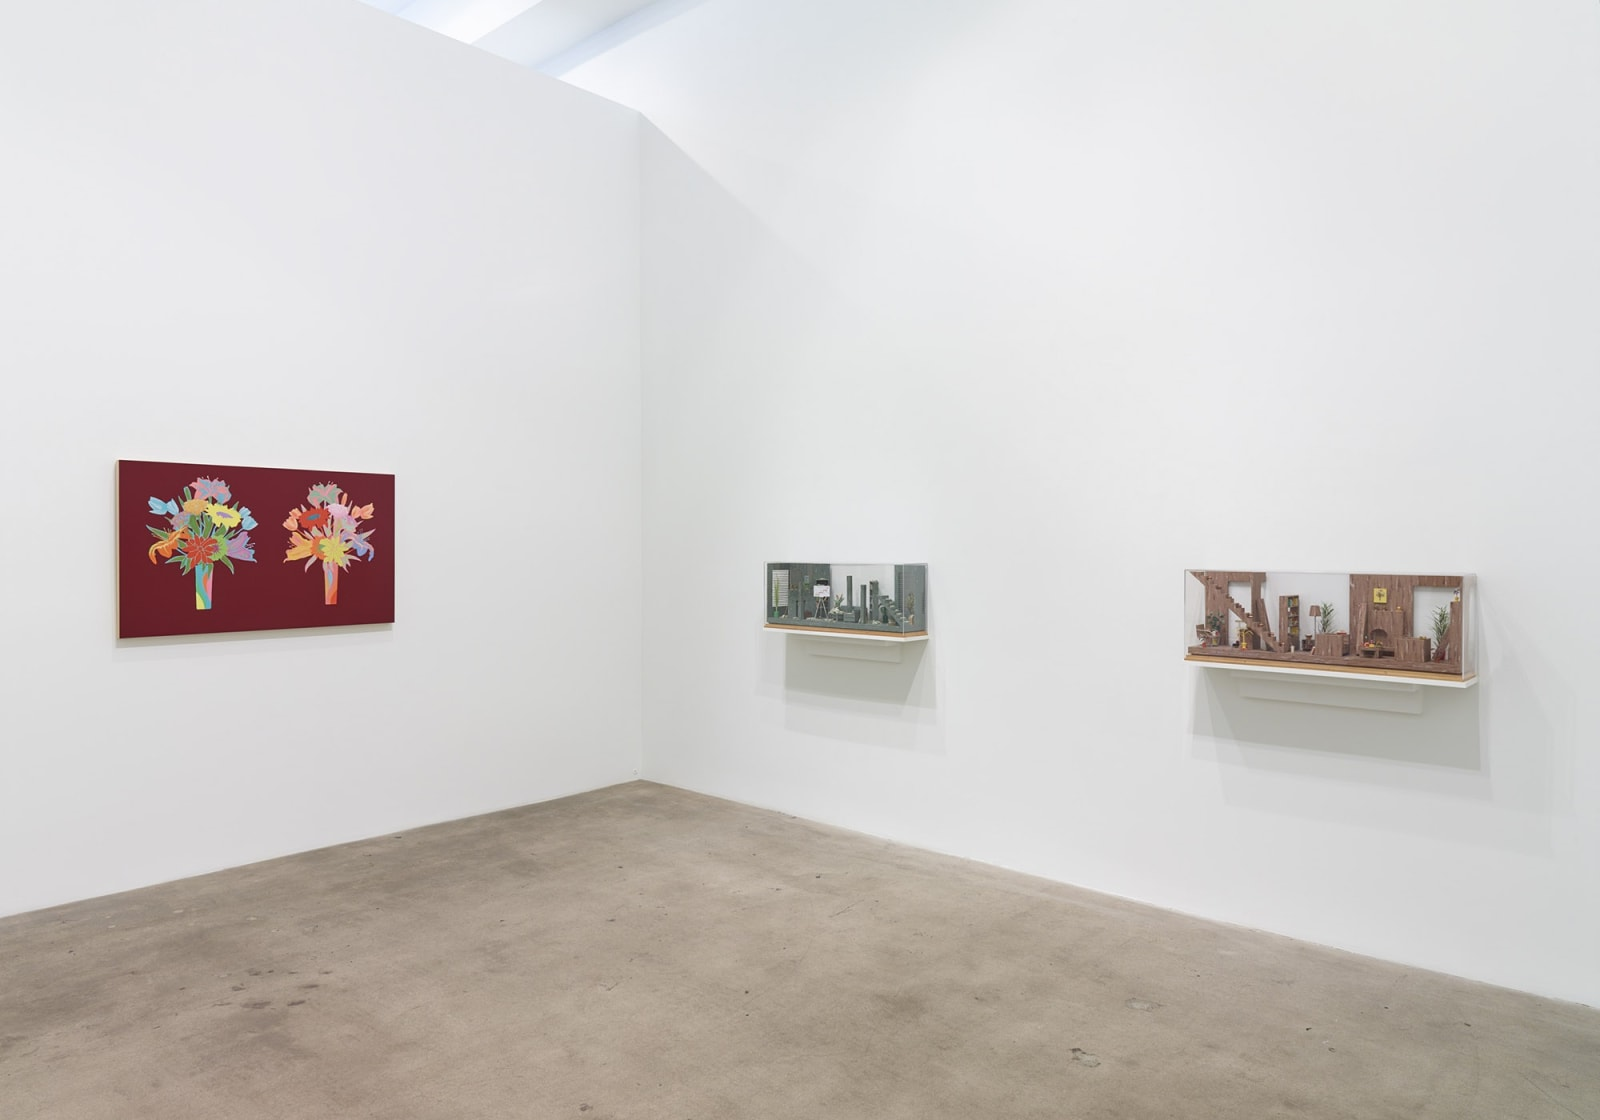 Roland Reiss: Unrepentant Flowers and New Miniature Tableaux